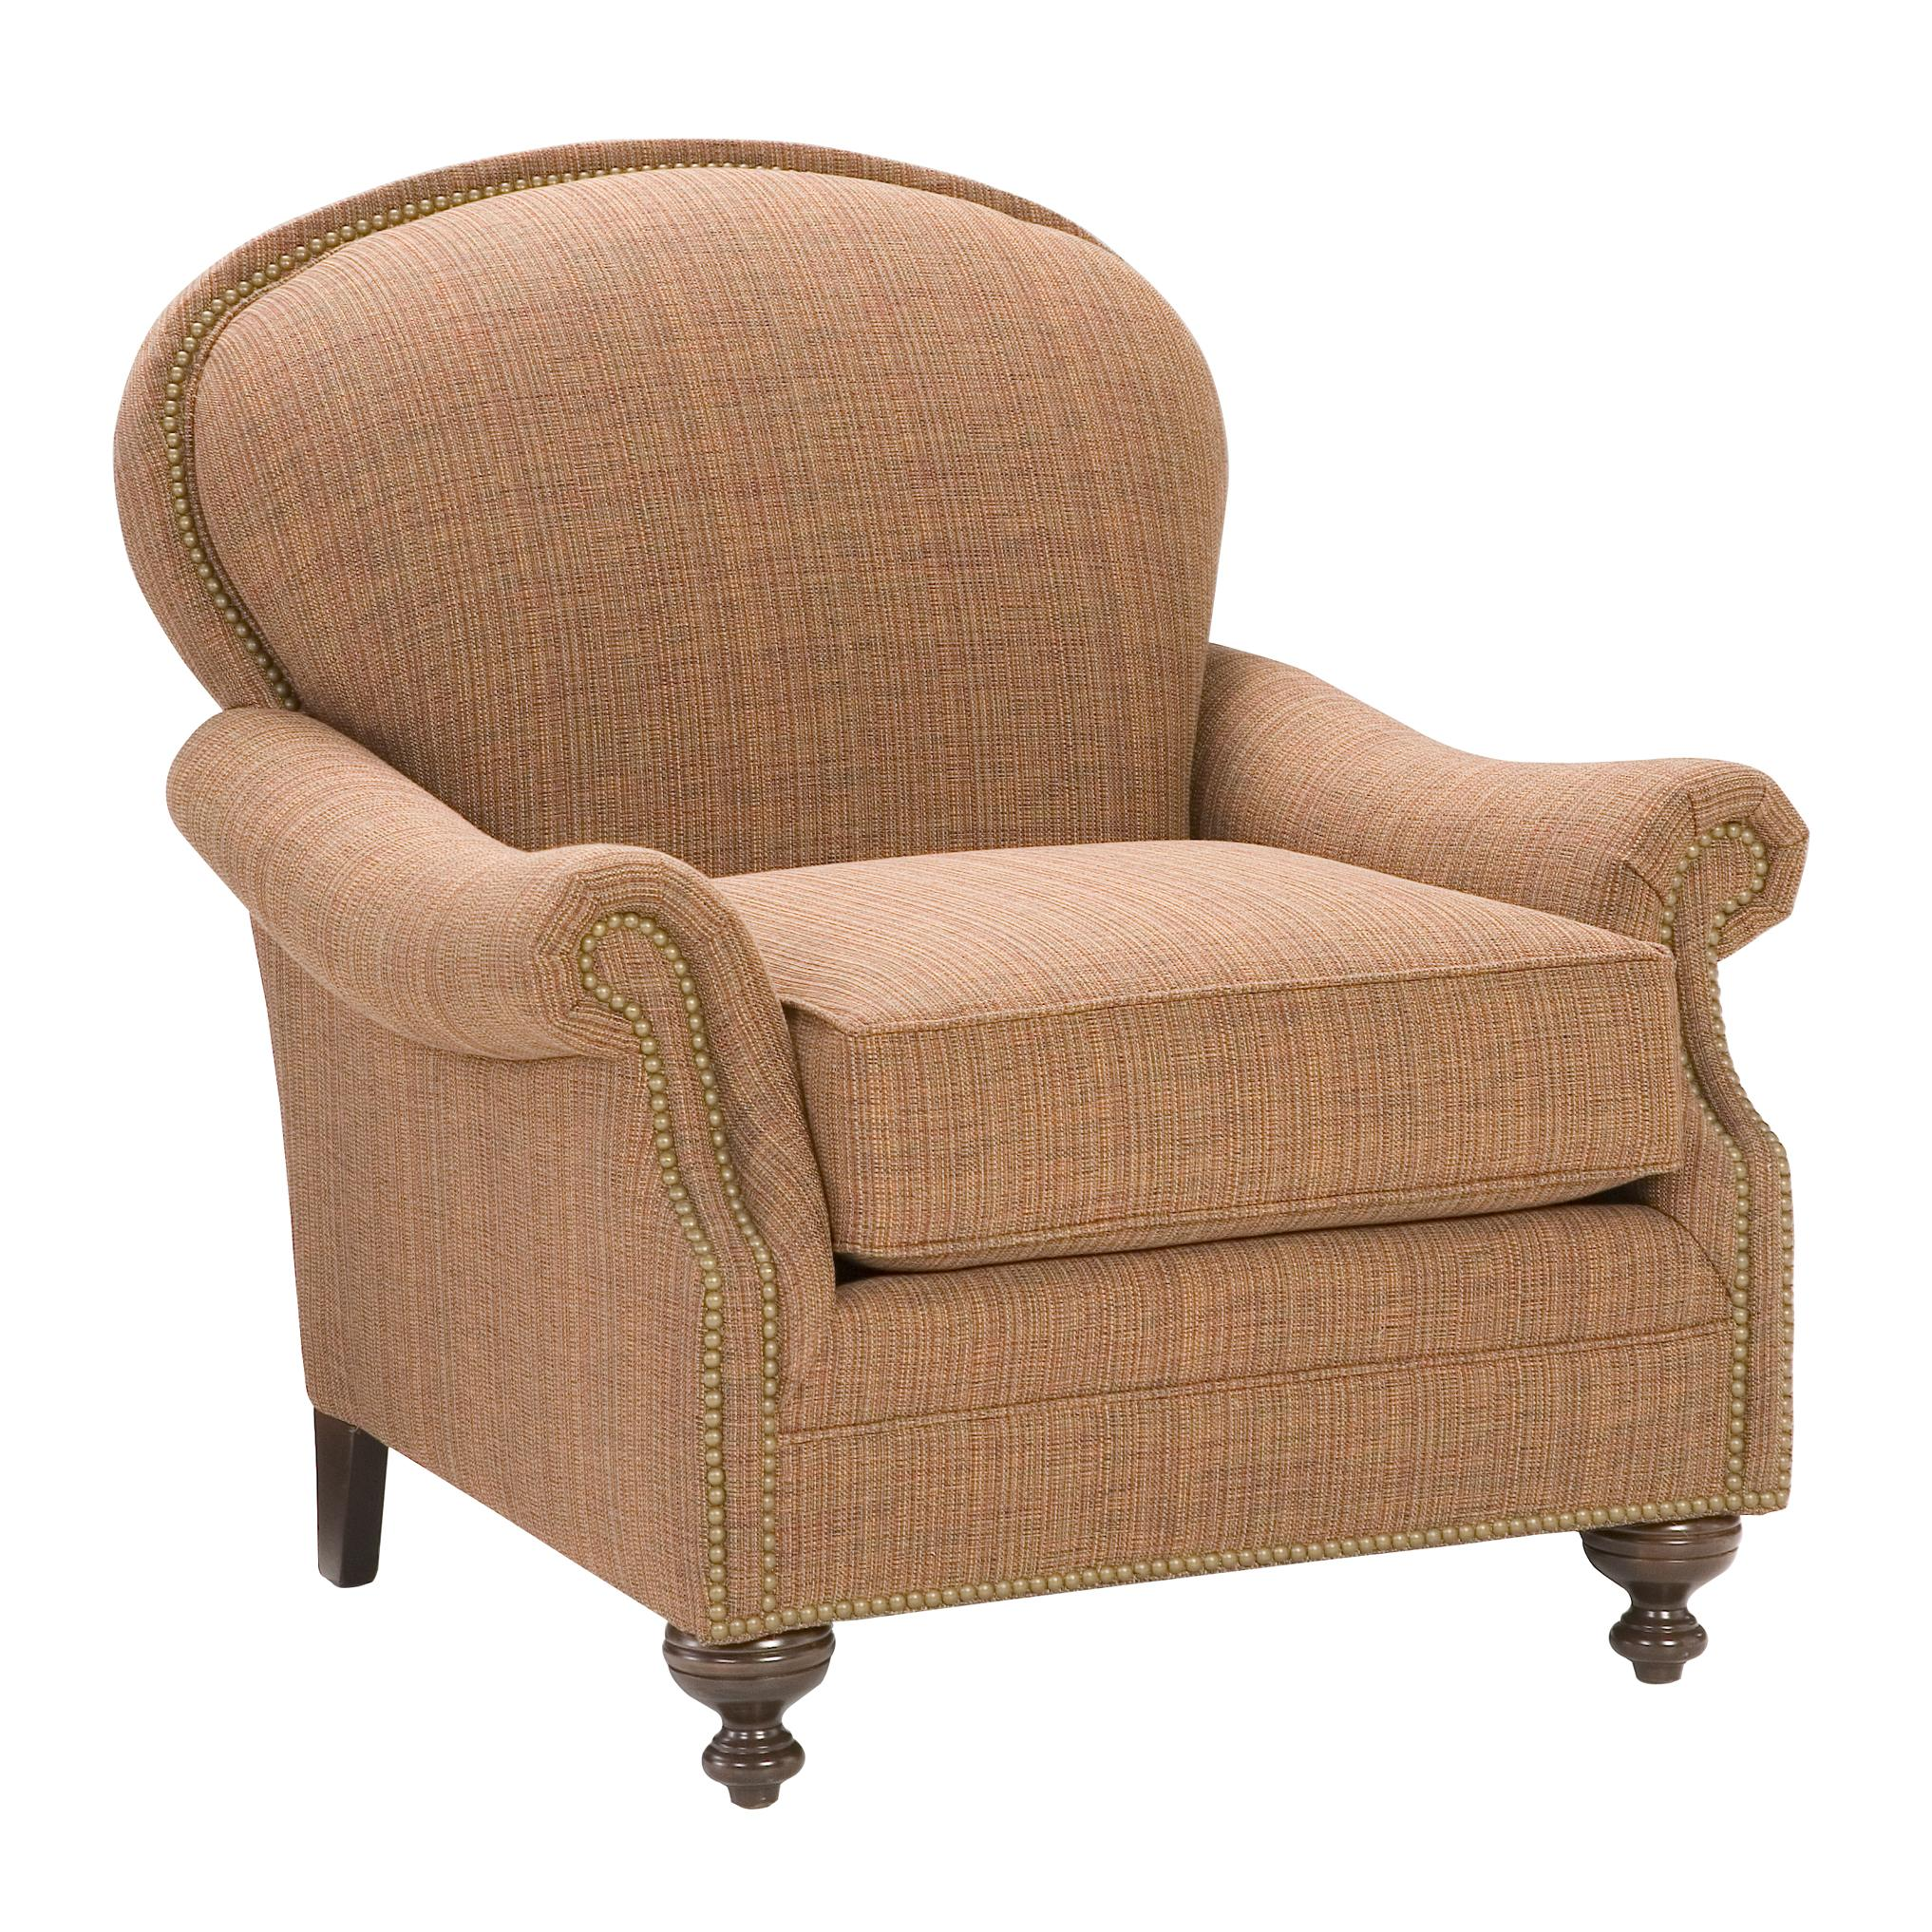 king hickory chair staples turcotte accent chairs and ottomans 831